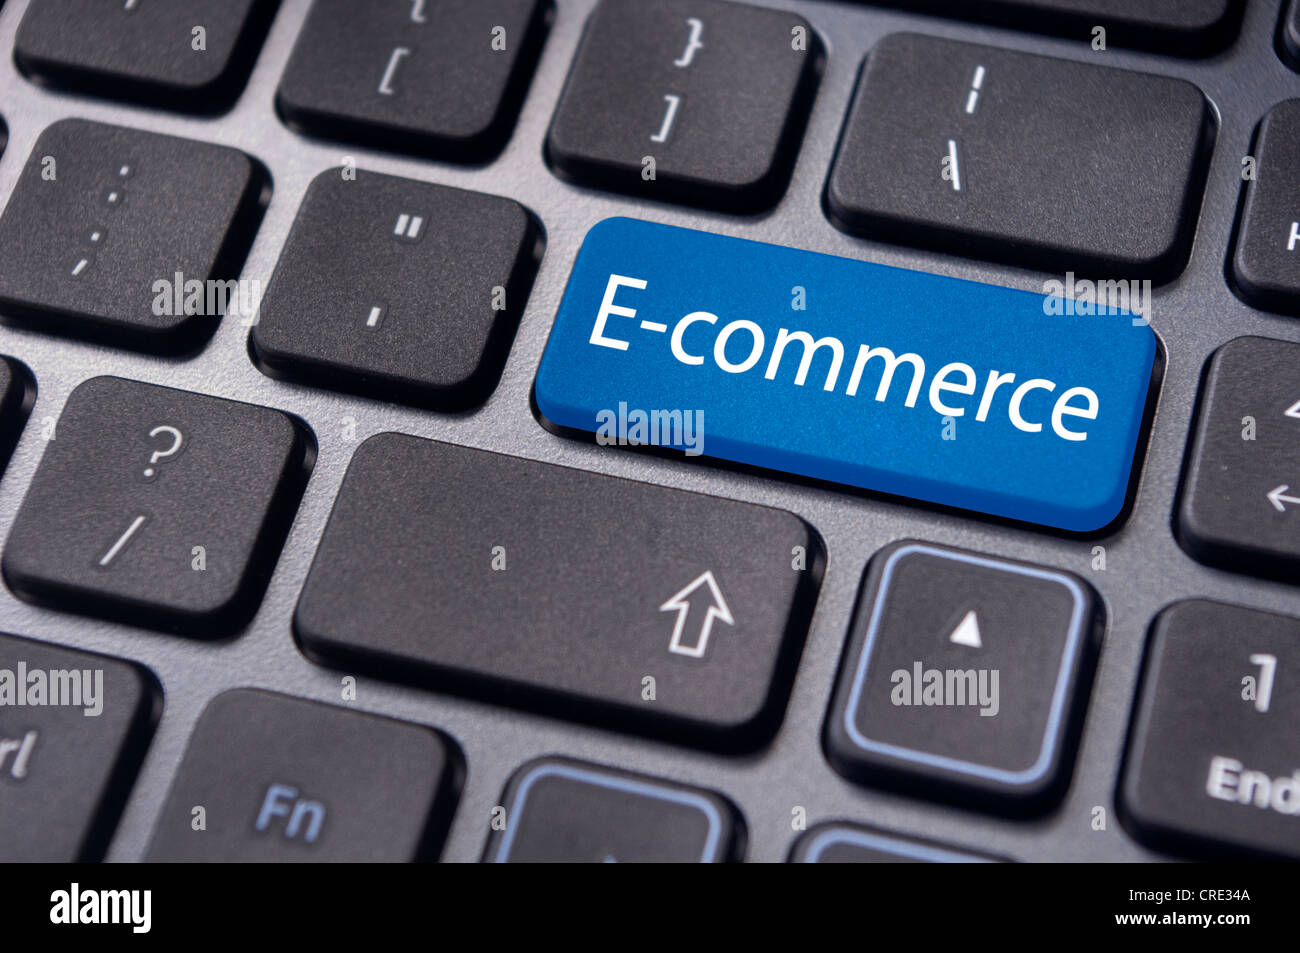 concept of e-commerce or ecommerce, electronic commerce, with message on computer keyboard. - Stock Image